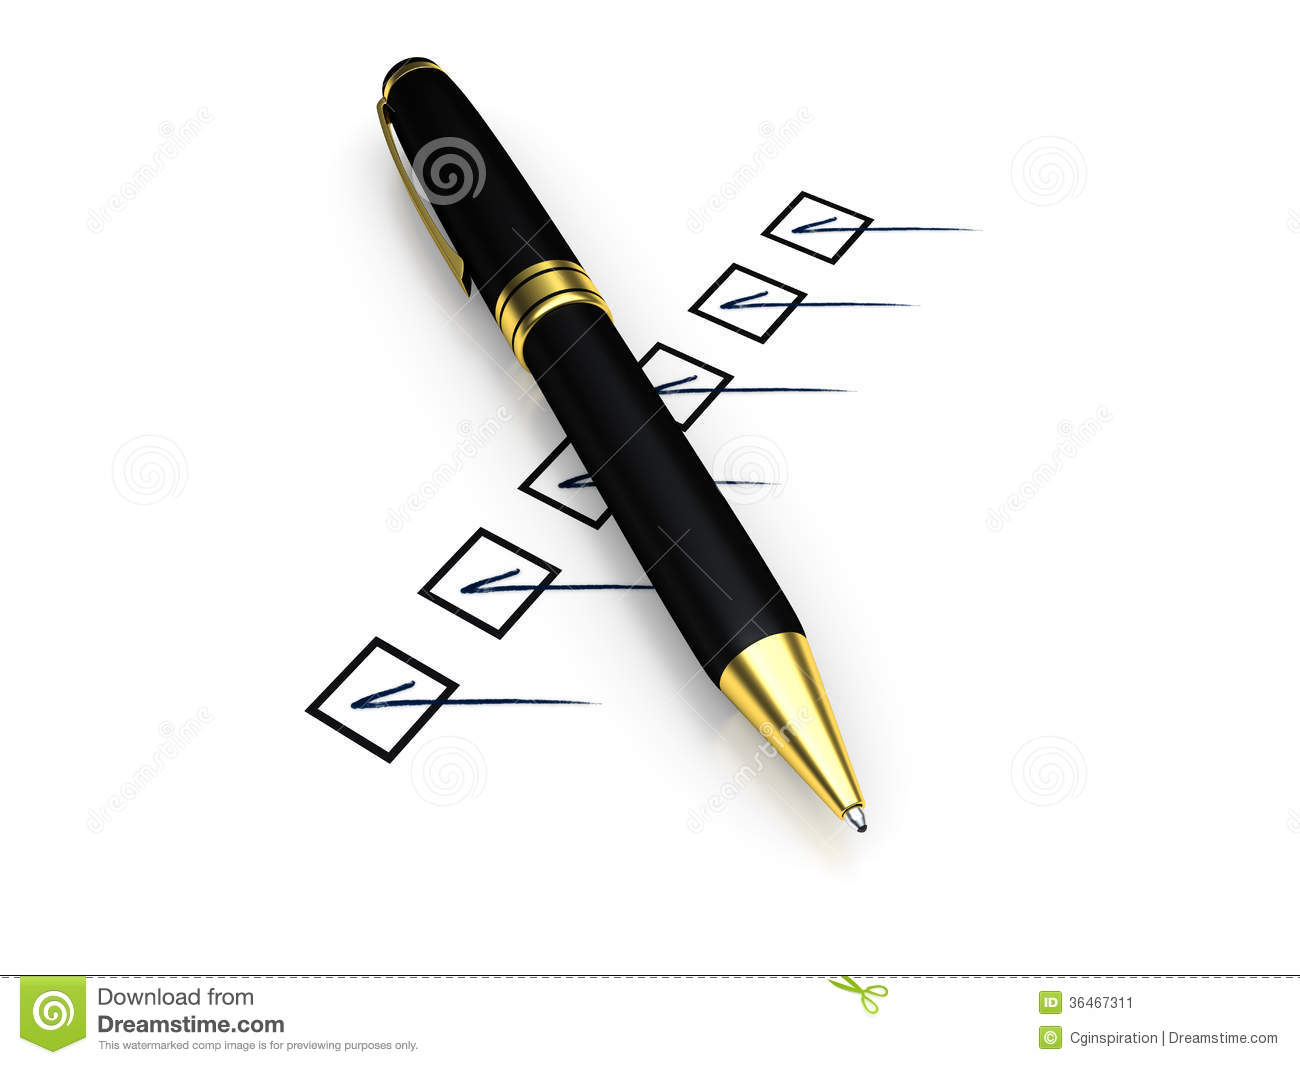 Pen And Checklist Stock Image - Image: 36467311